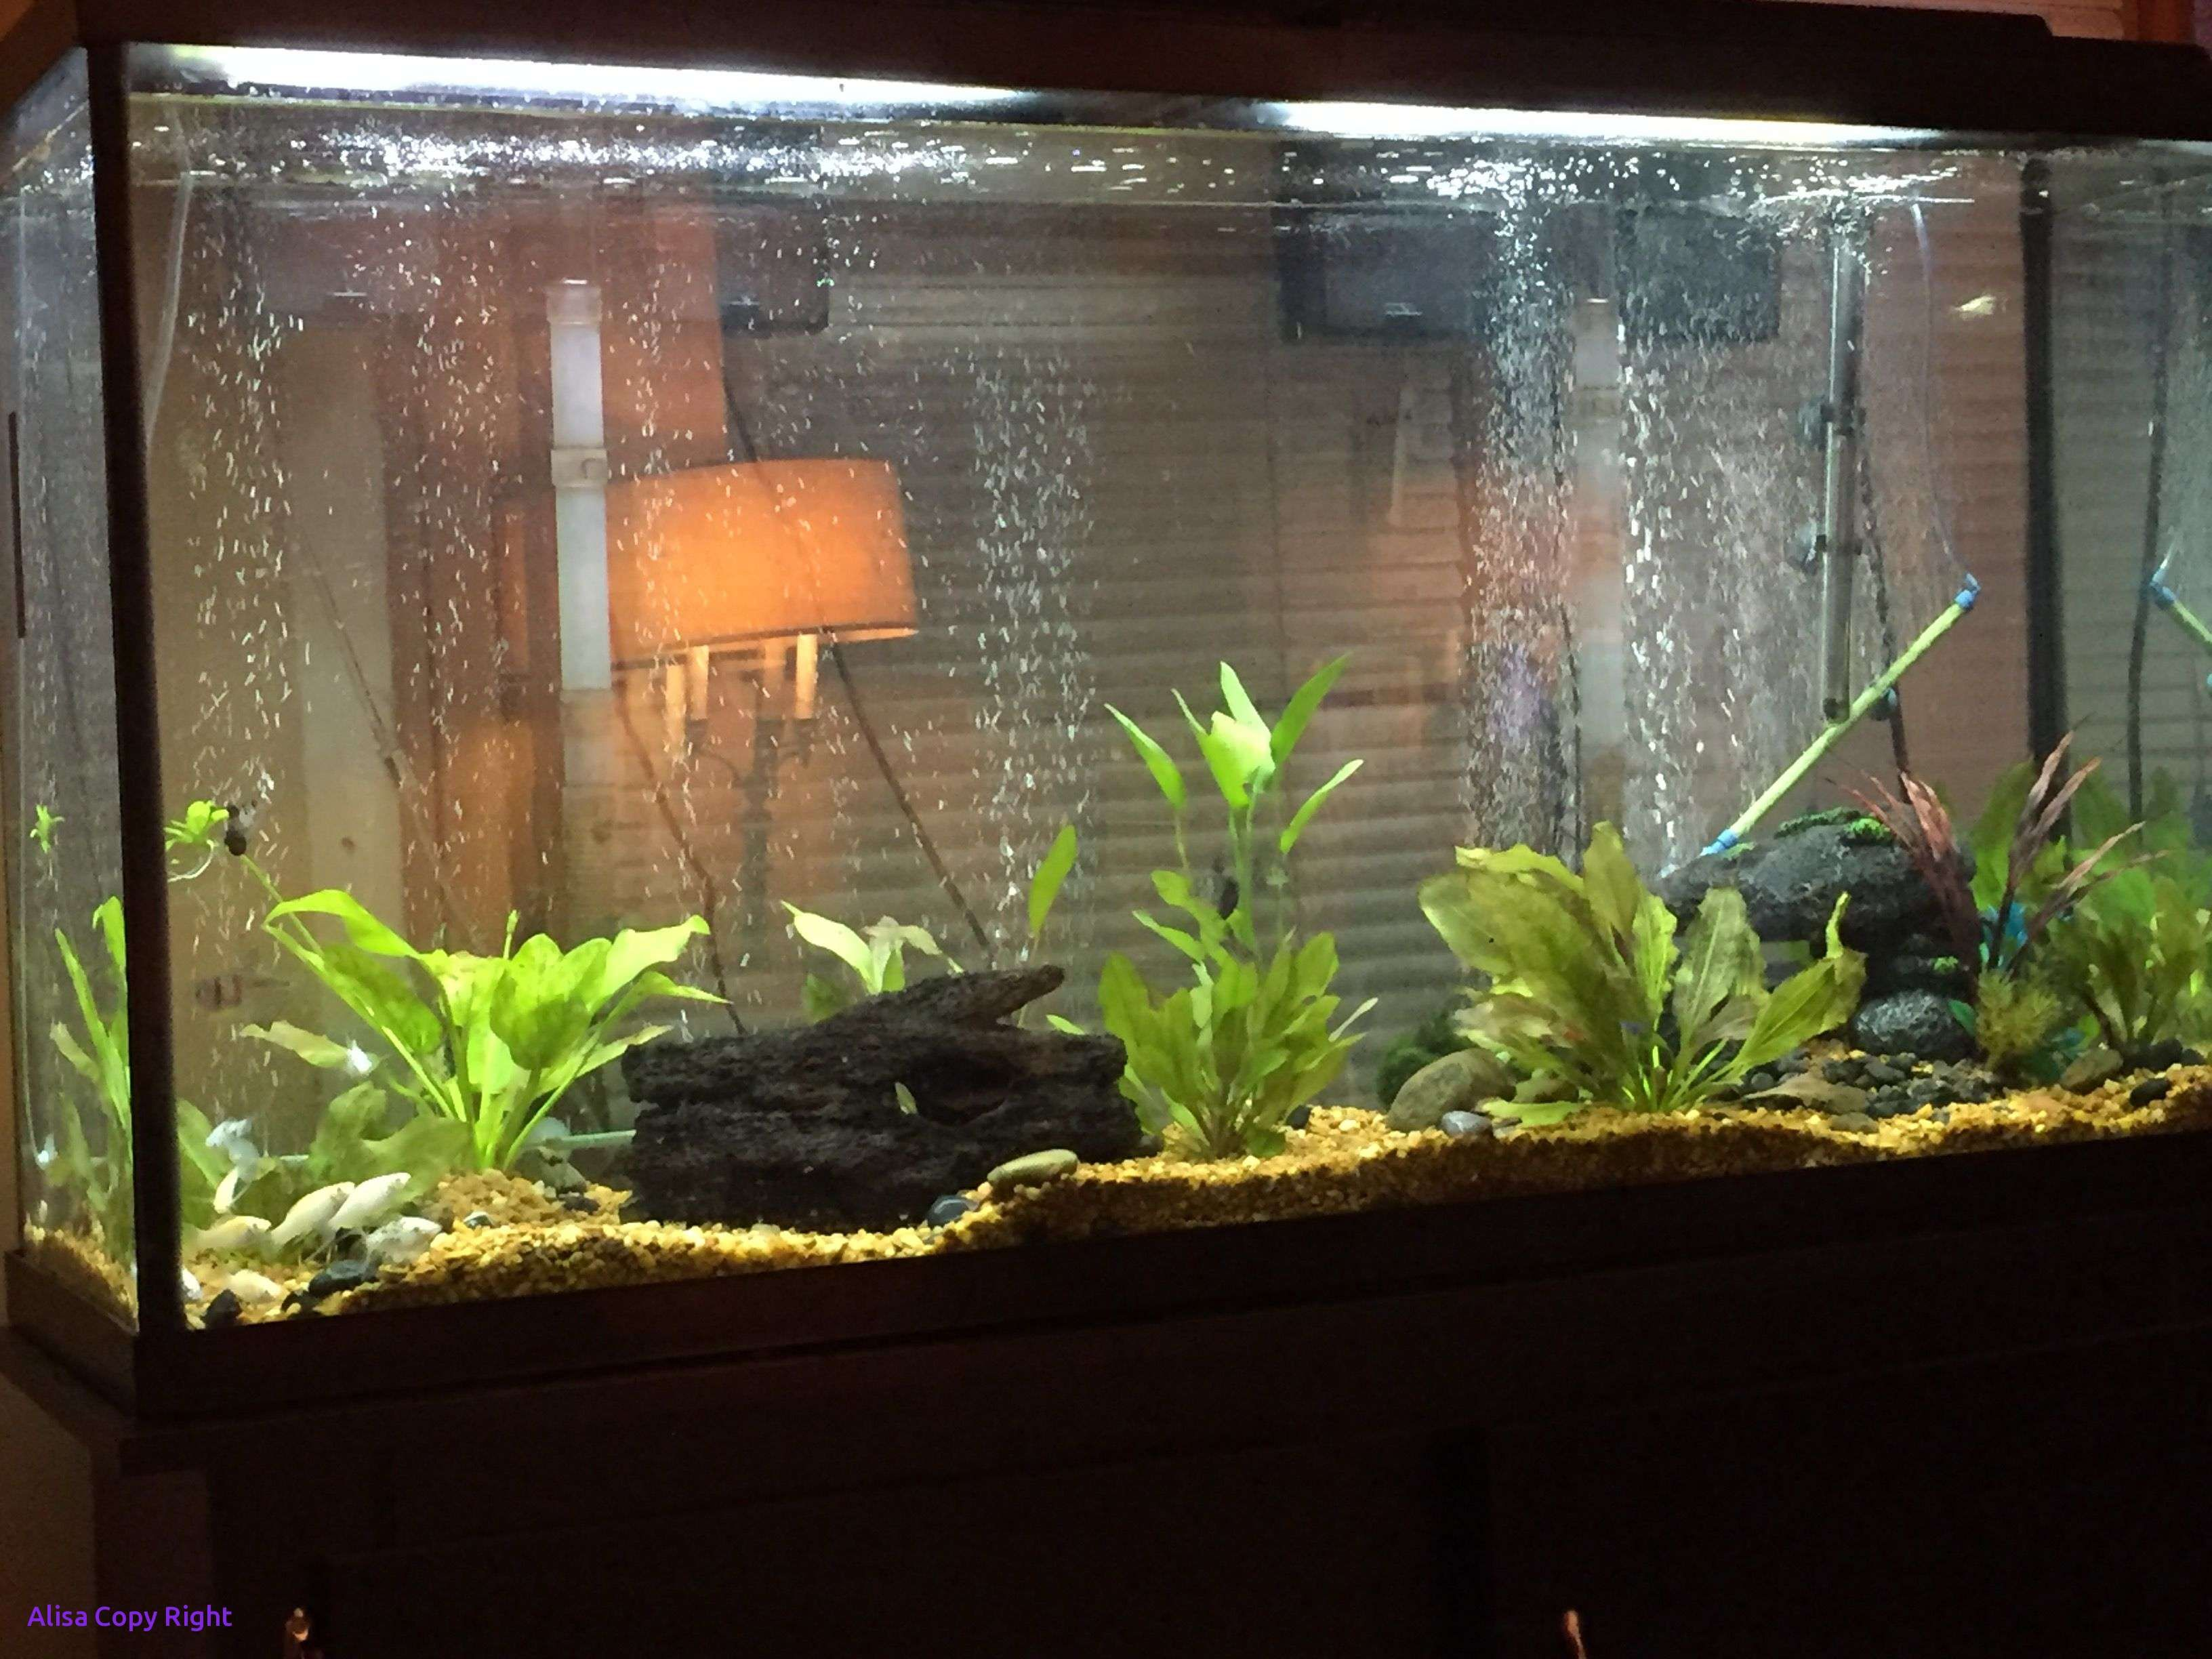 Contemporary Fish Tanks (With images) | Modern fish tank, Diy fish tank, Fish tank